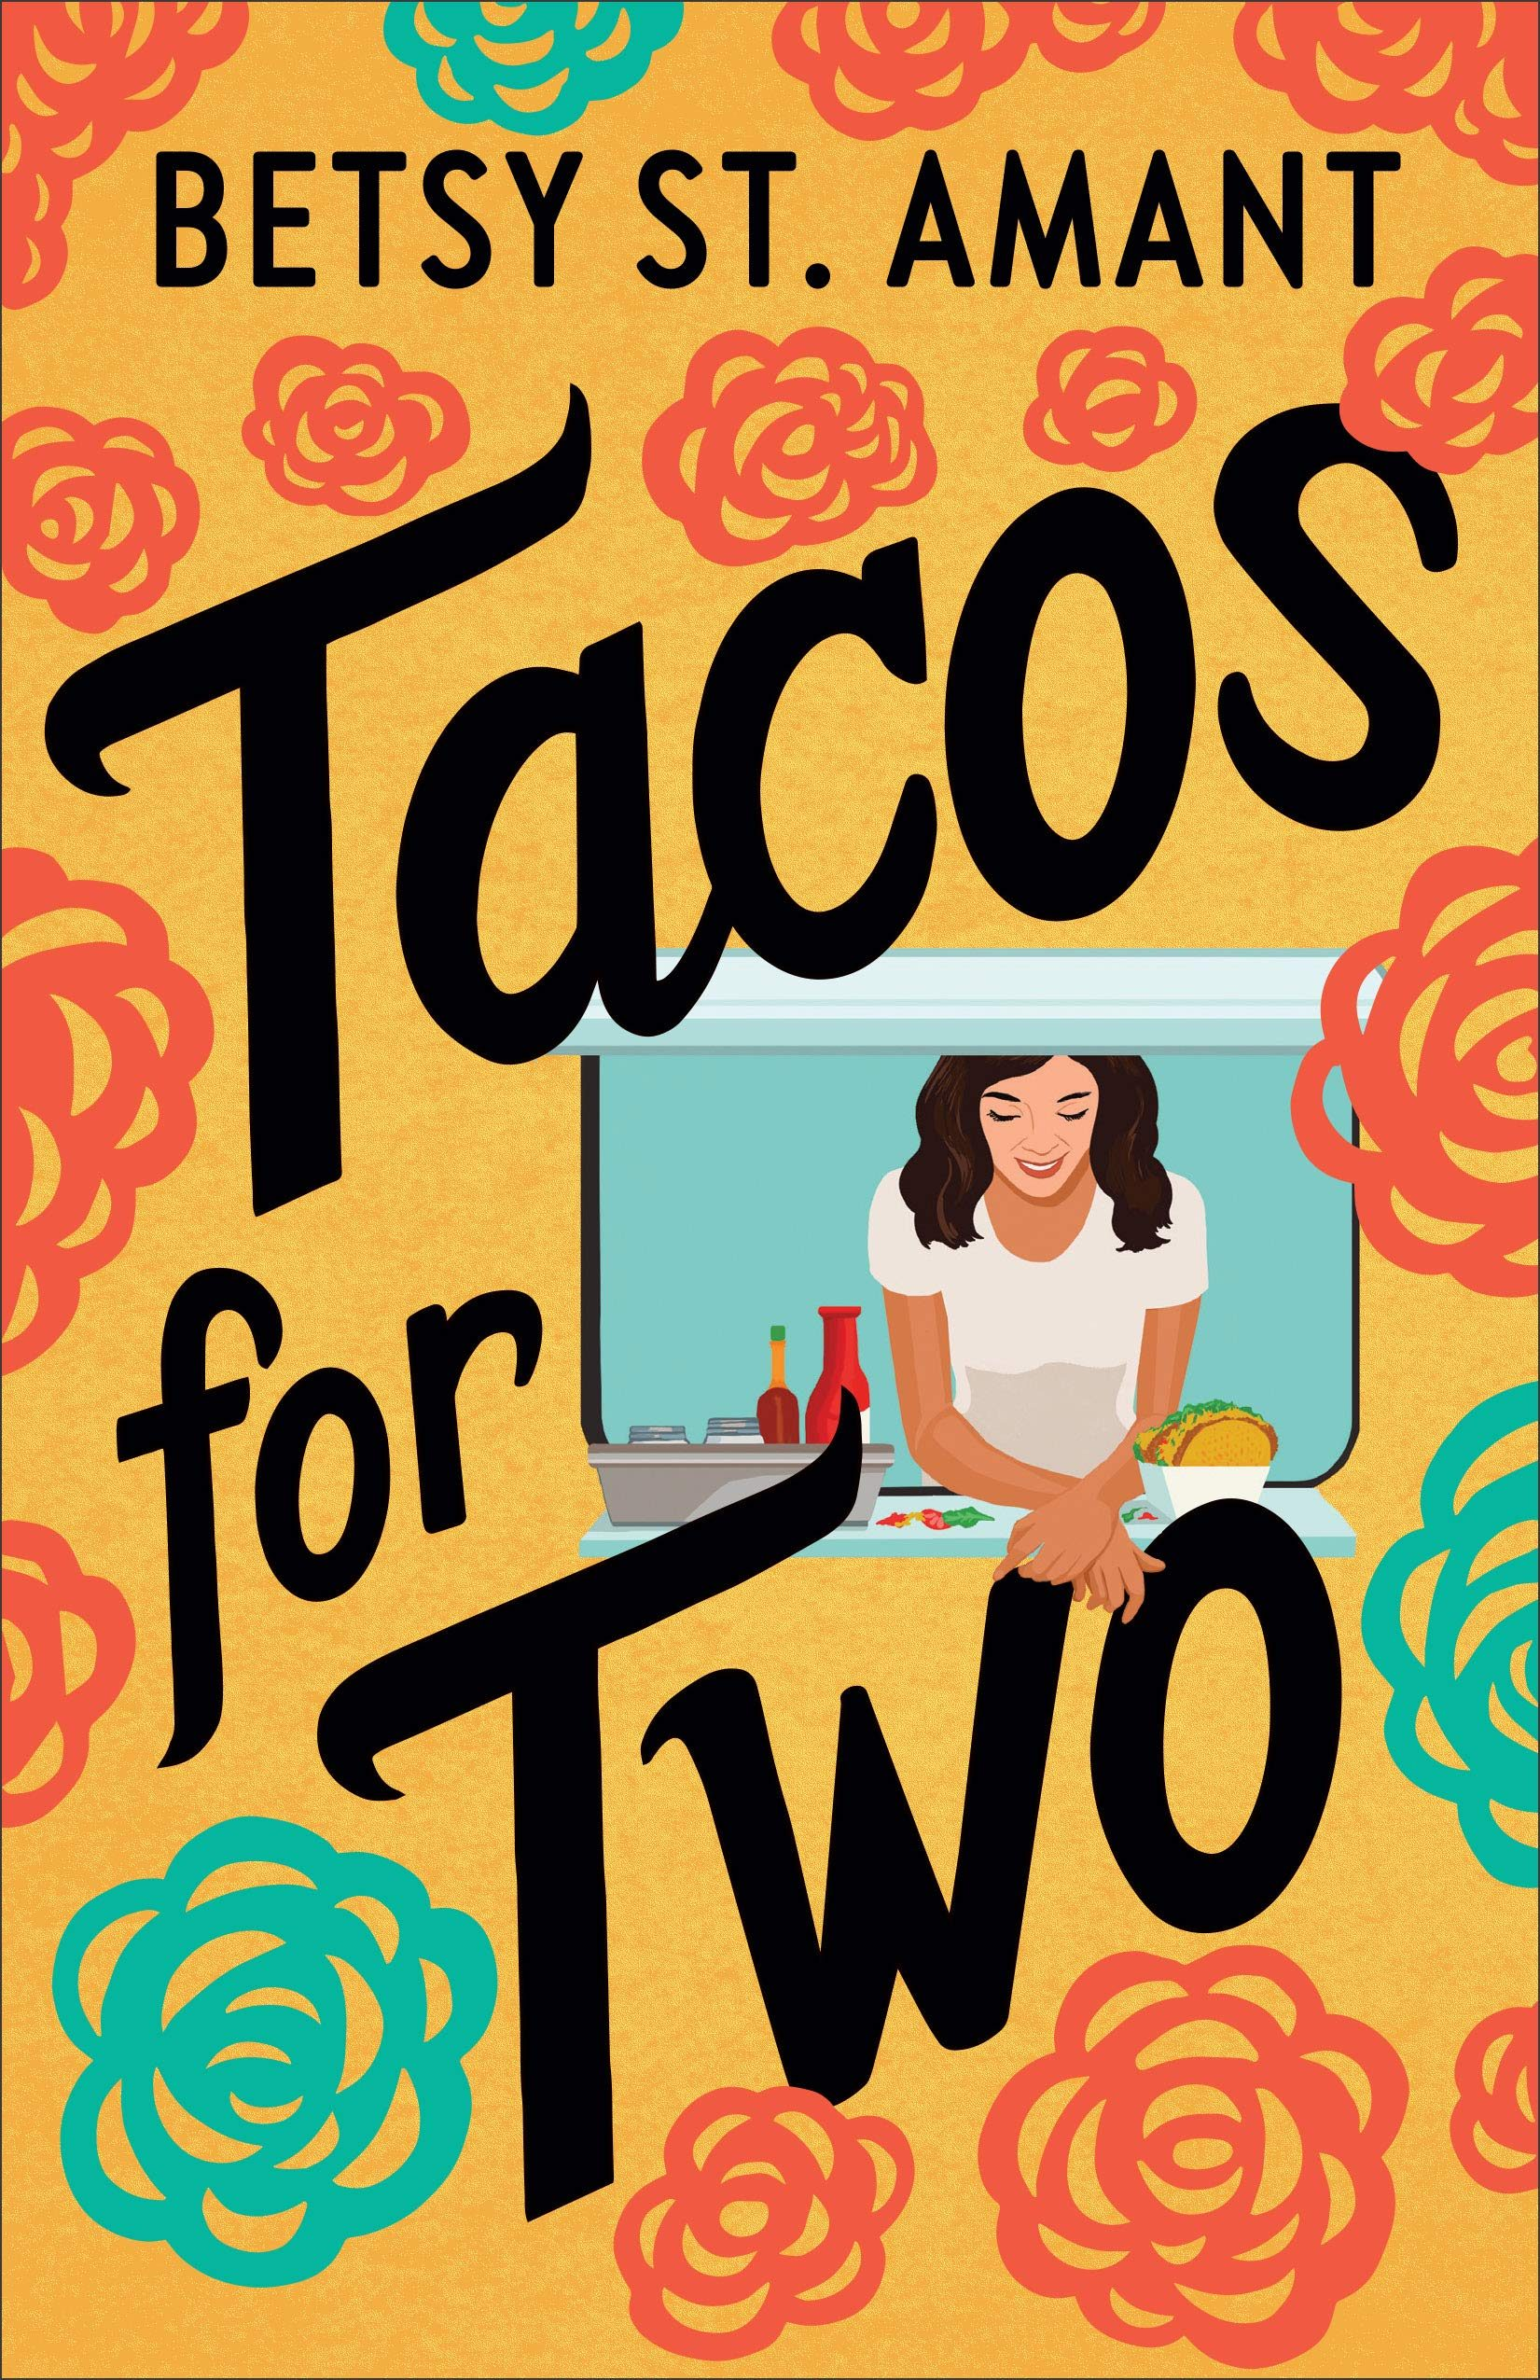 When Will Tacos For Two Release? Betsy St. Amant 2021 New Book